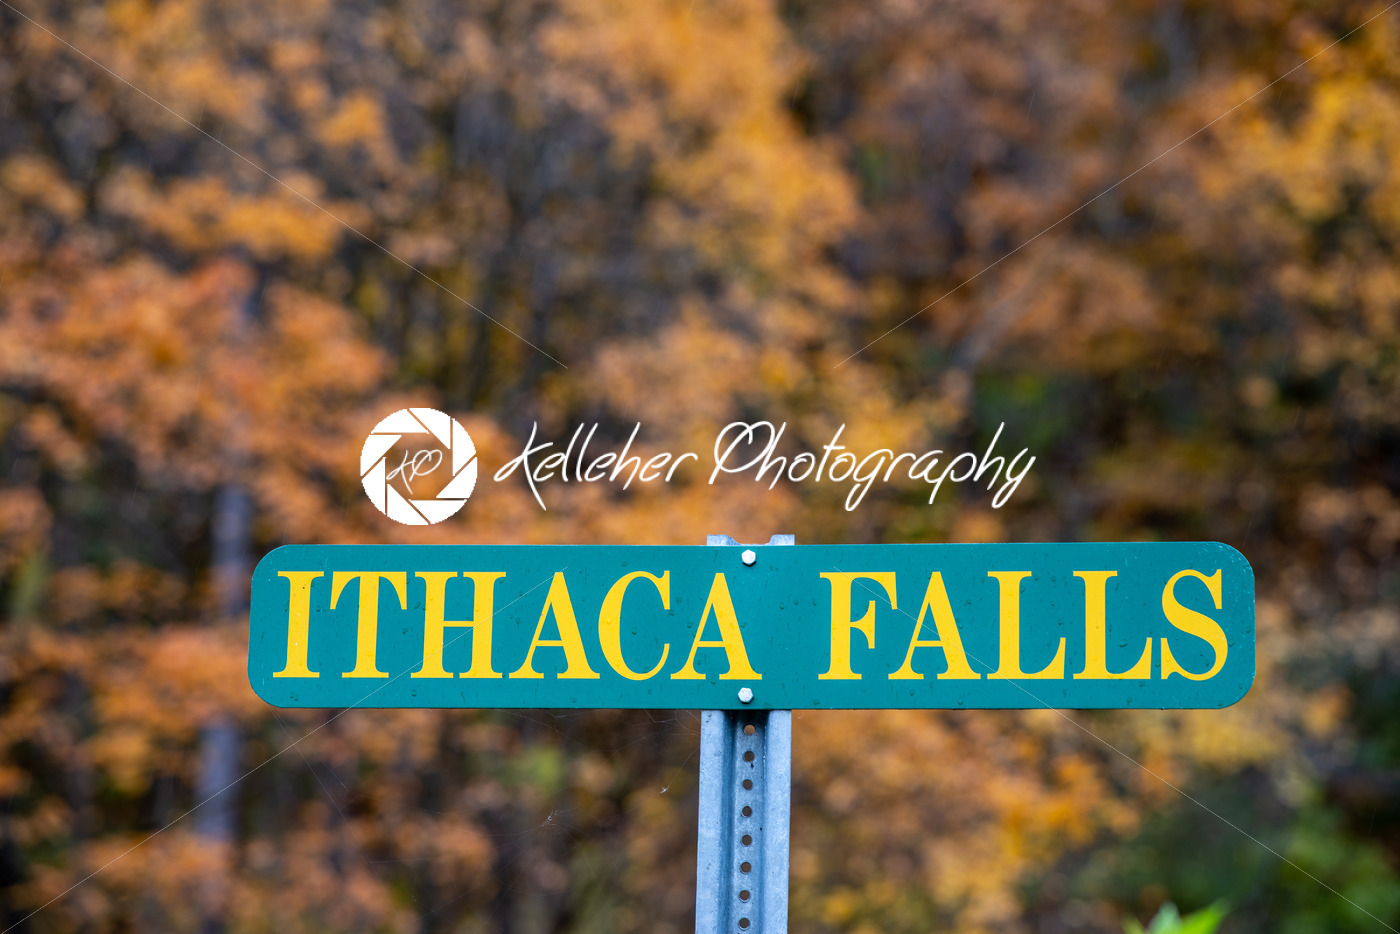 Ithaca Falls in the Finger Lakes region, Ithaca, New York. This is the last and largest of several waterfalls on Fall Creek. - Kelleher Photography Store